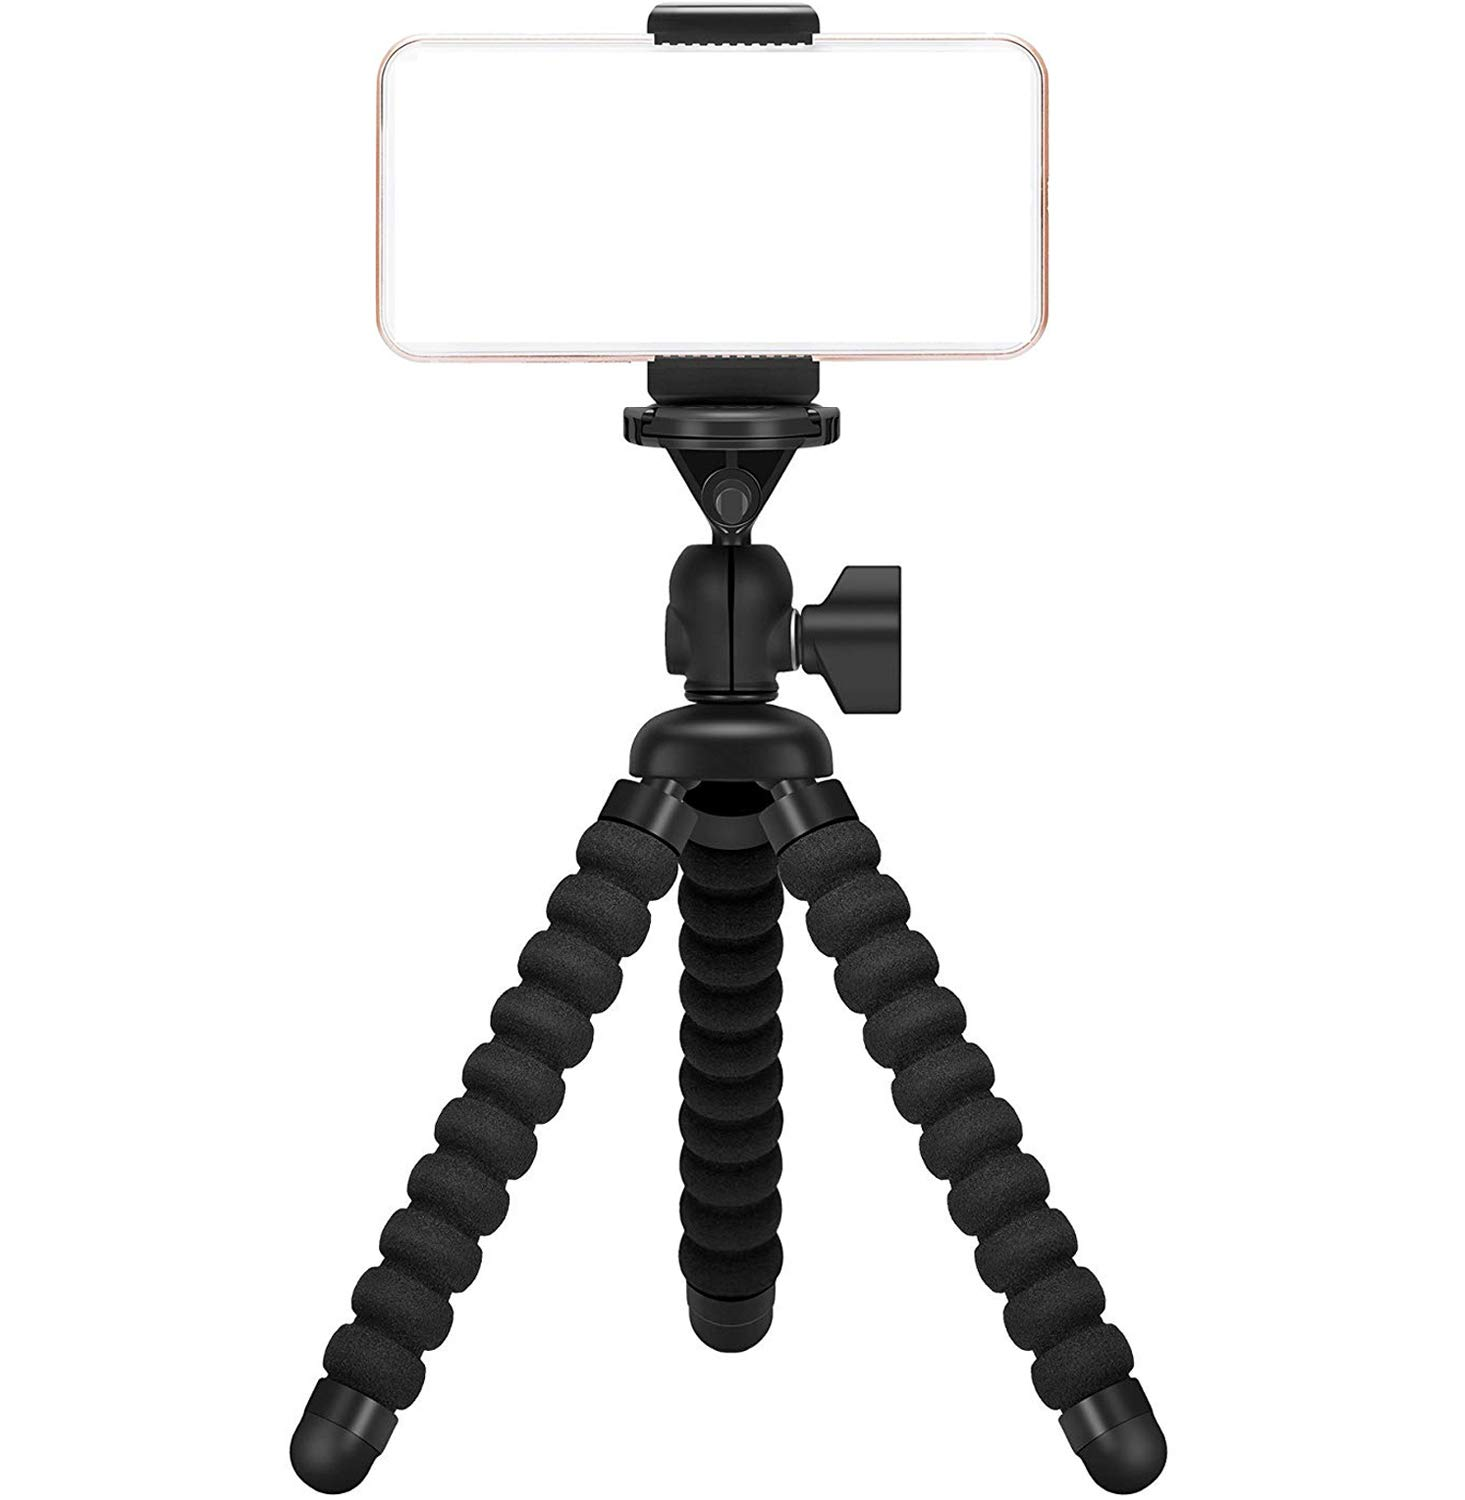 Ailun Digtal Camera Tripod Mount Stand Camera Holder for iPhone 11/11 Pro/11 Pro Max/X Xs XR Xs Max 8 7 7 Plus Digtal Camera Galaxy s10 plus S9+ S8 S7 S7 Edge Note 10 Camera and more Black